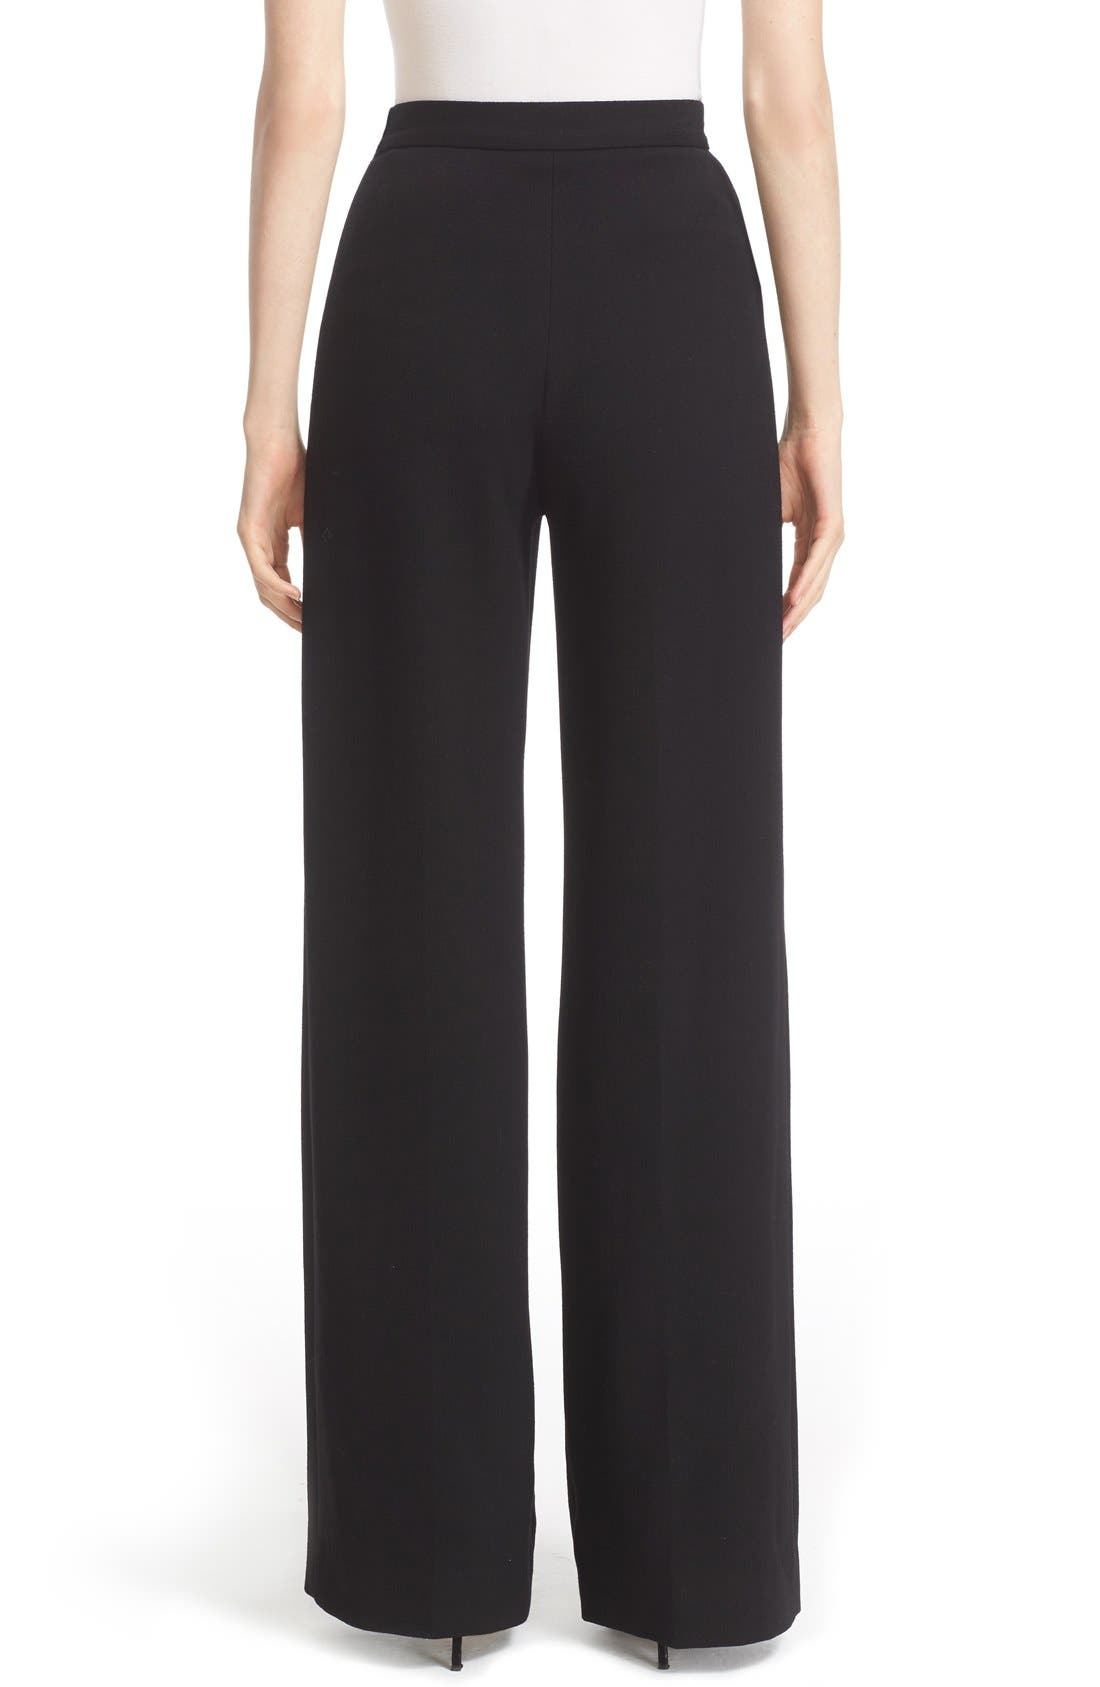 Stretch Wool High Waist Pants,                             Alternate thumbnail 3, color,                             001